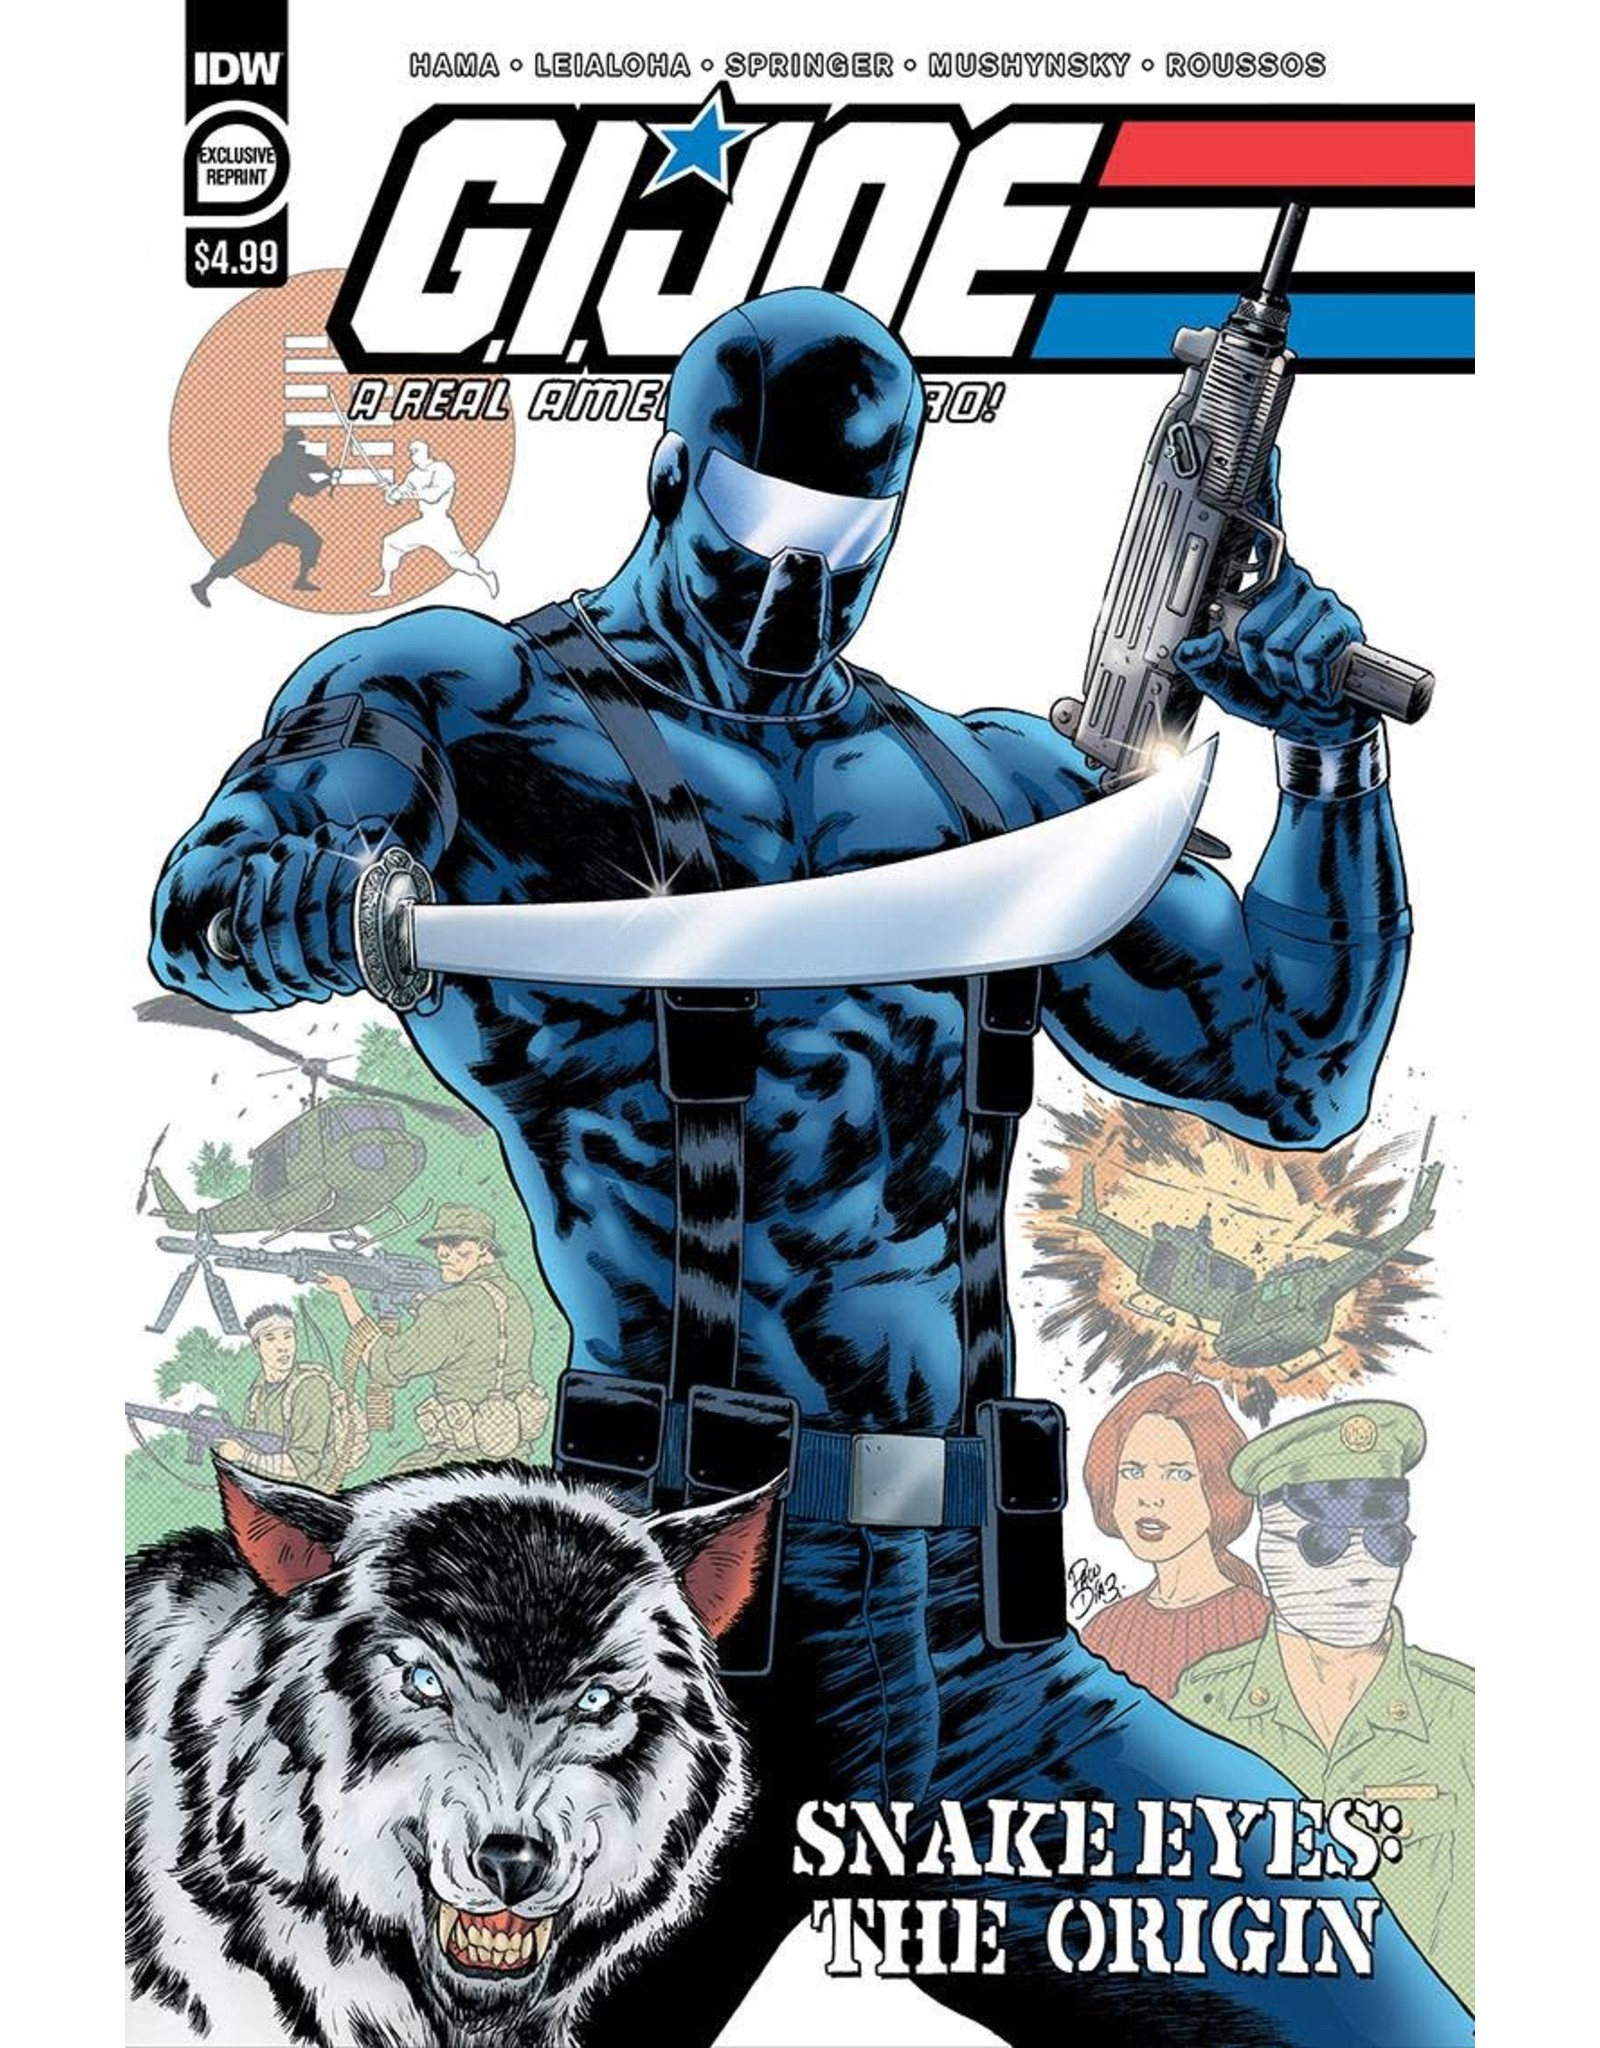 IDW PUBLISHING GI JOE A REAL AMERICAN HERO SNAKE EYES ORIGIN